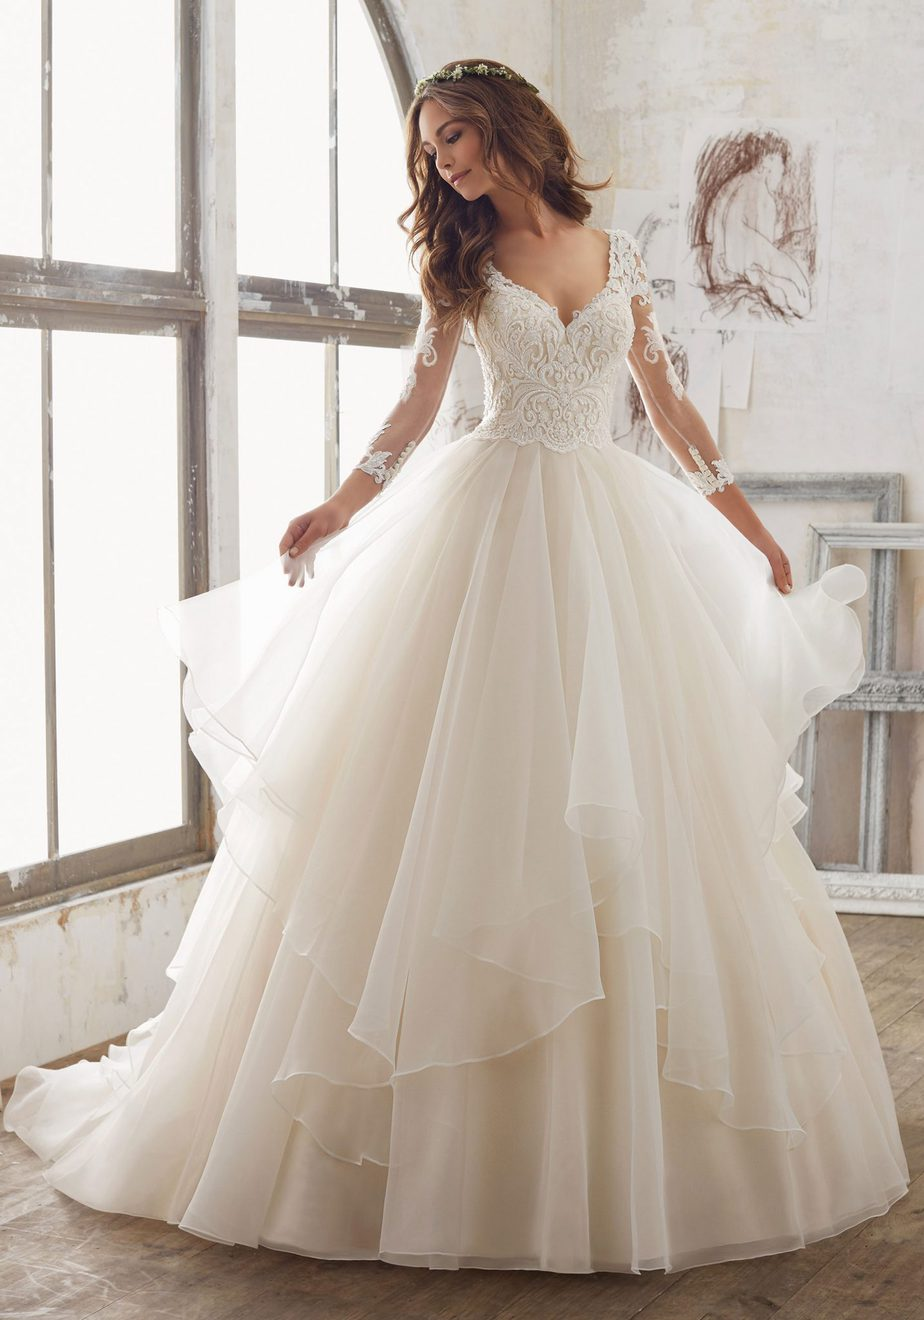 The Top 10 Wedding Dress Styles from top designers   Culture ...